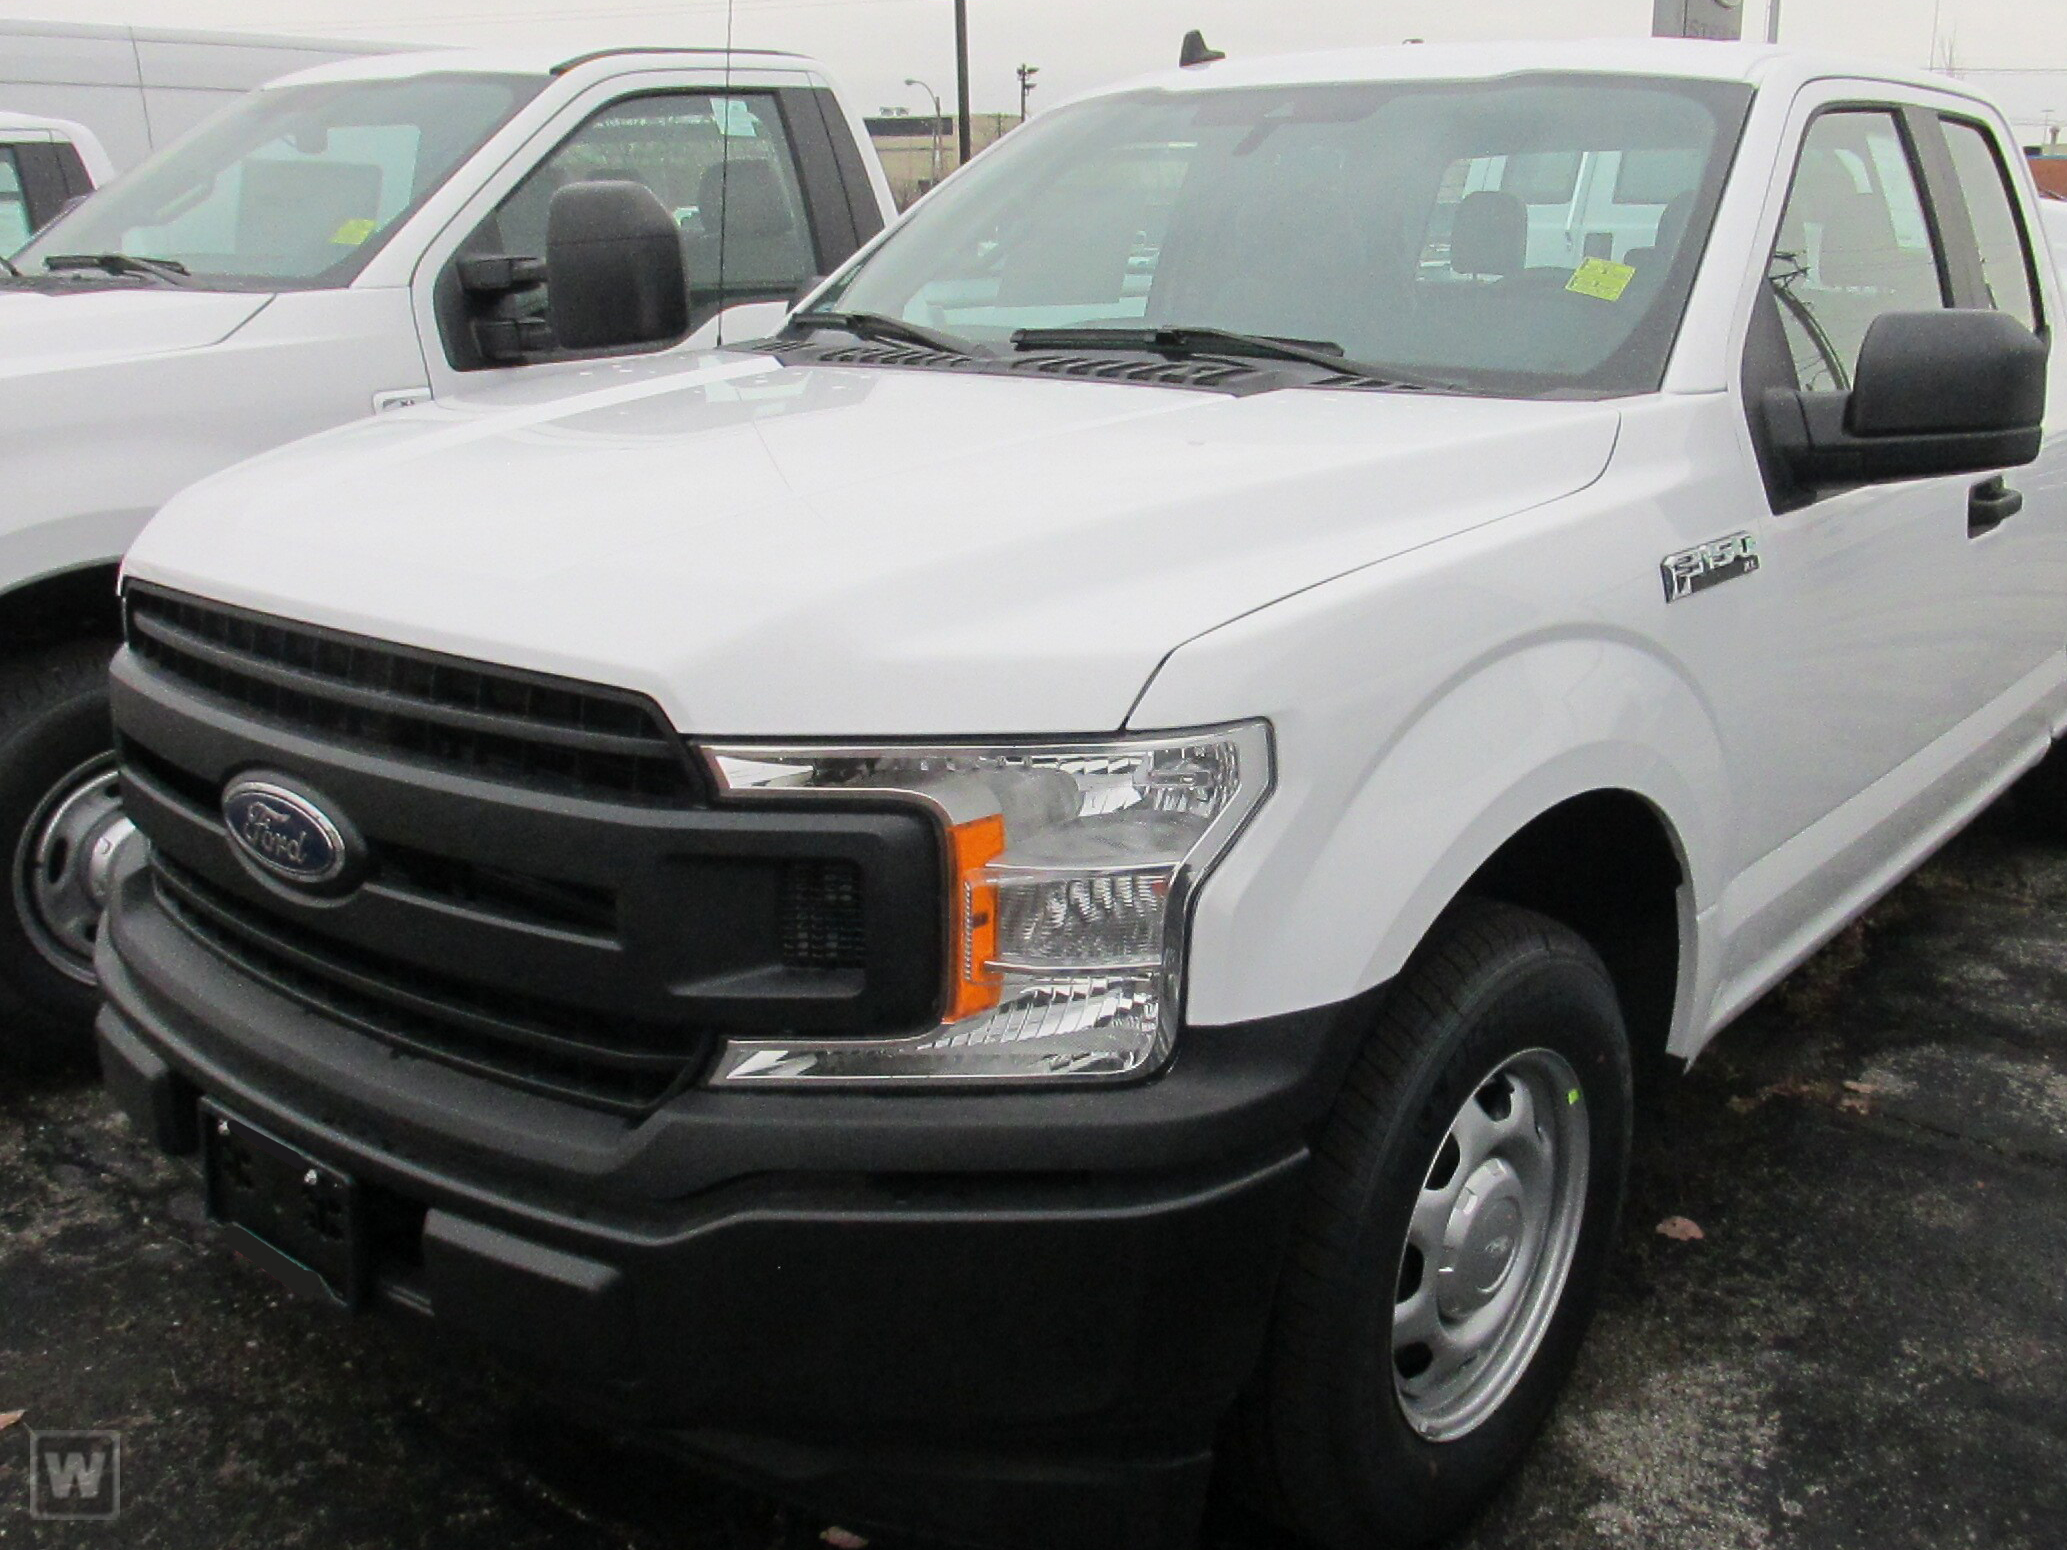 2020 Ford F-150 Super Cab 4x4, Pickup #F37659 - photo 1